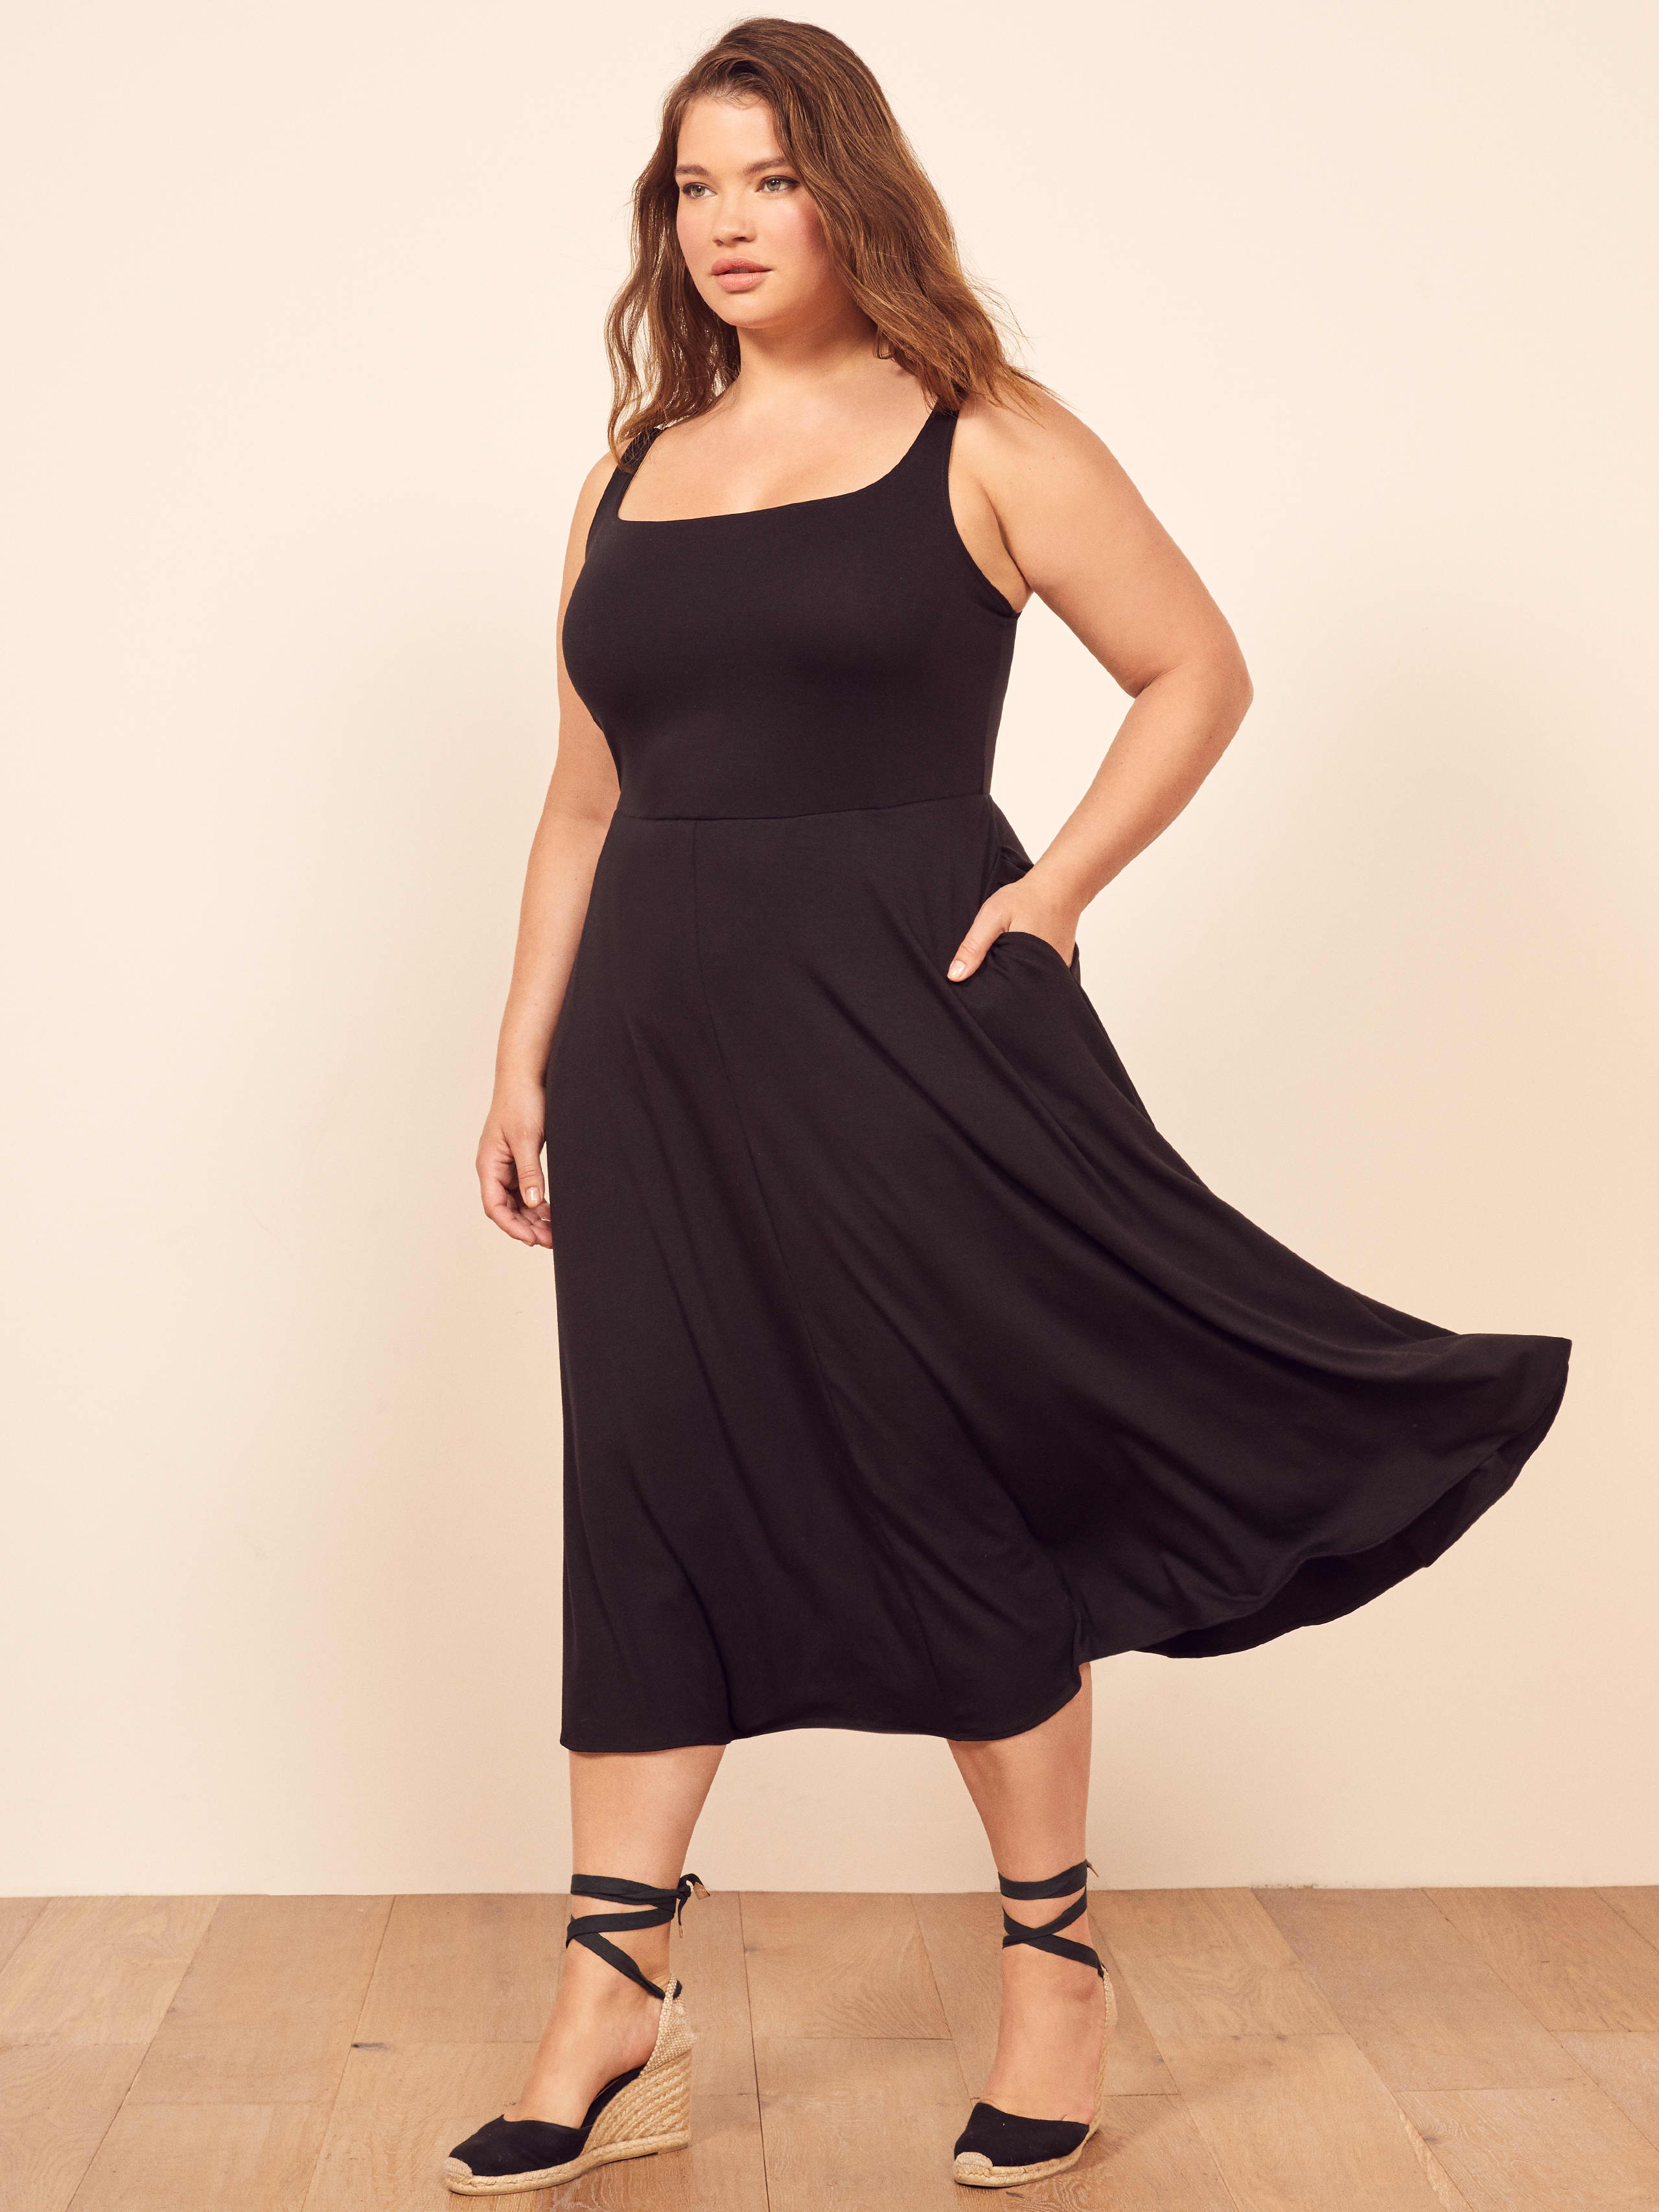 d10aa4e841b Reformation Plus Size Clothing Relaunch Spring 2019